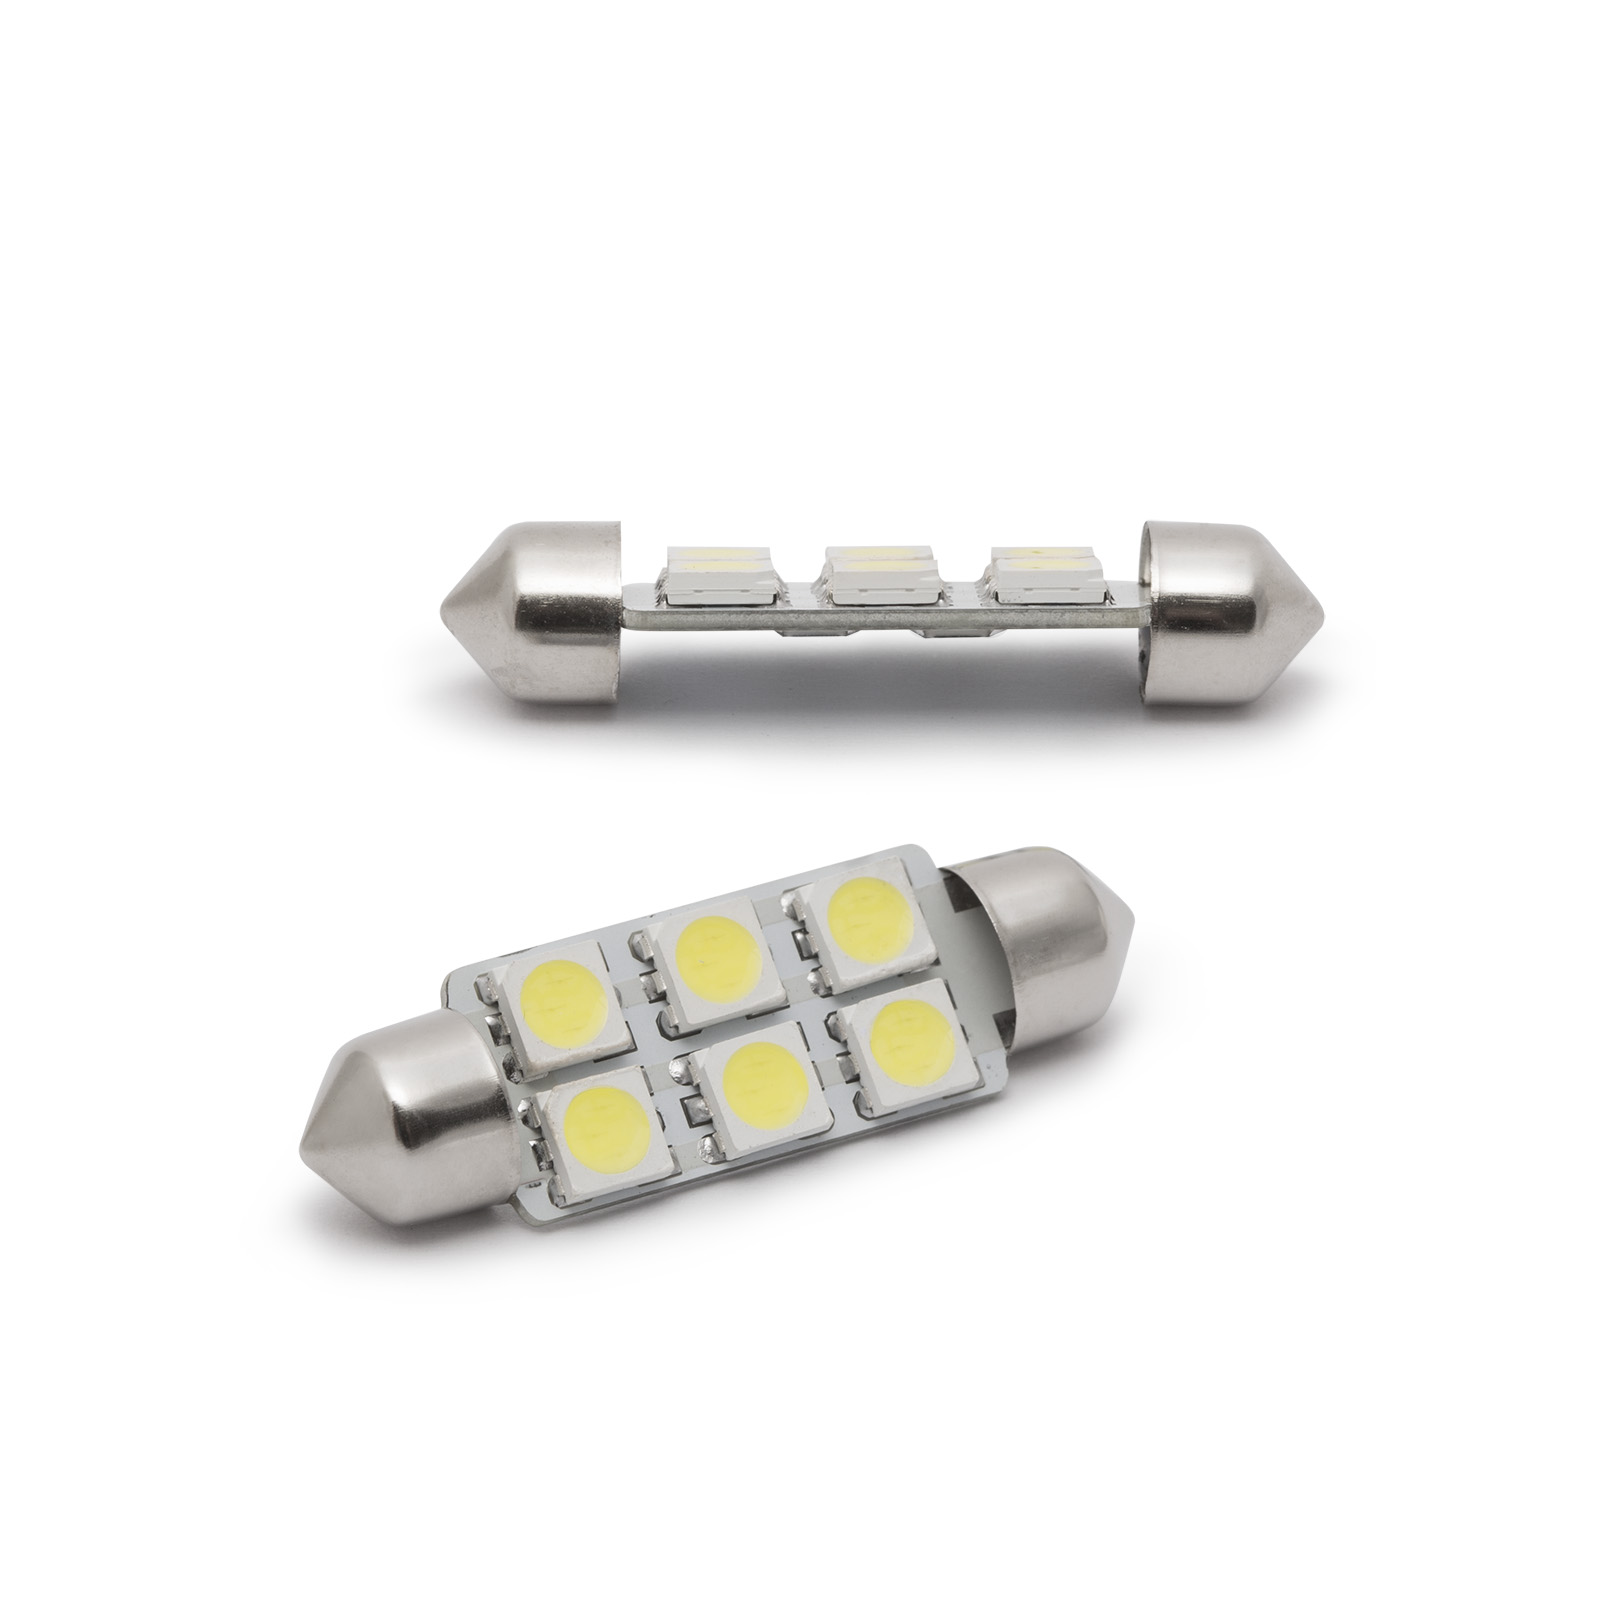 LED izzó CLD016 1,5W - Sofit 39mm - 108 lumen 2 db/bliszter